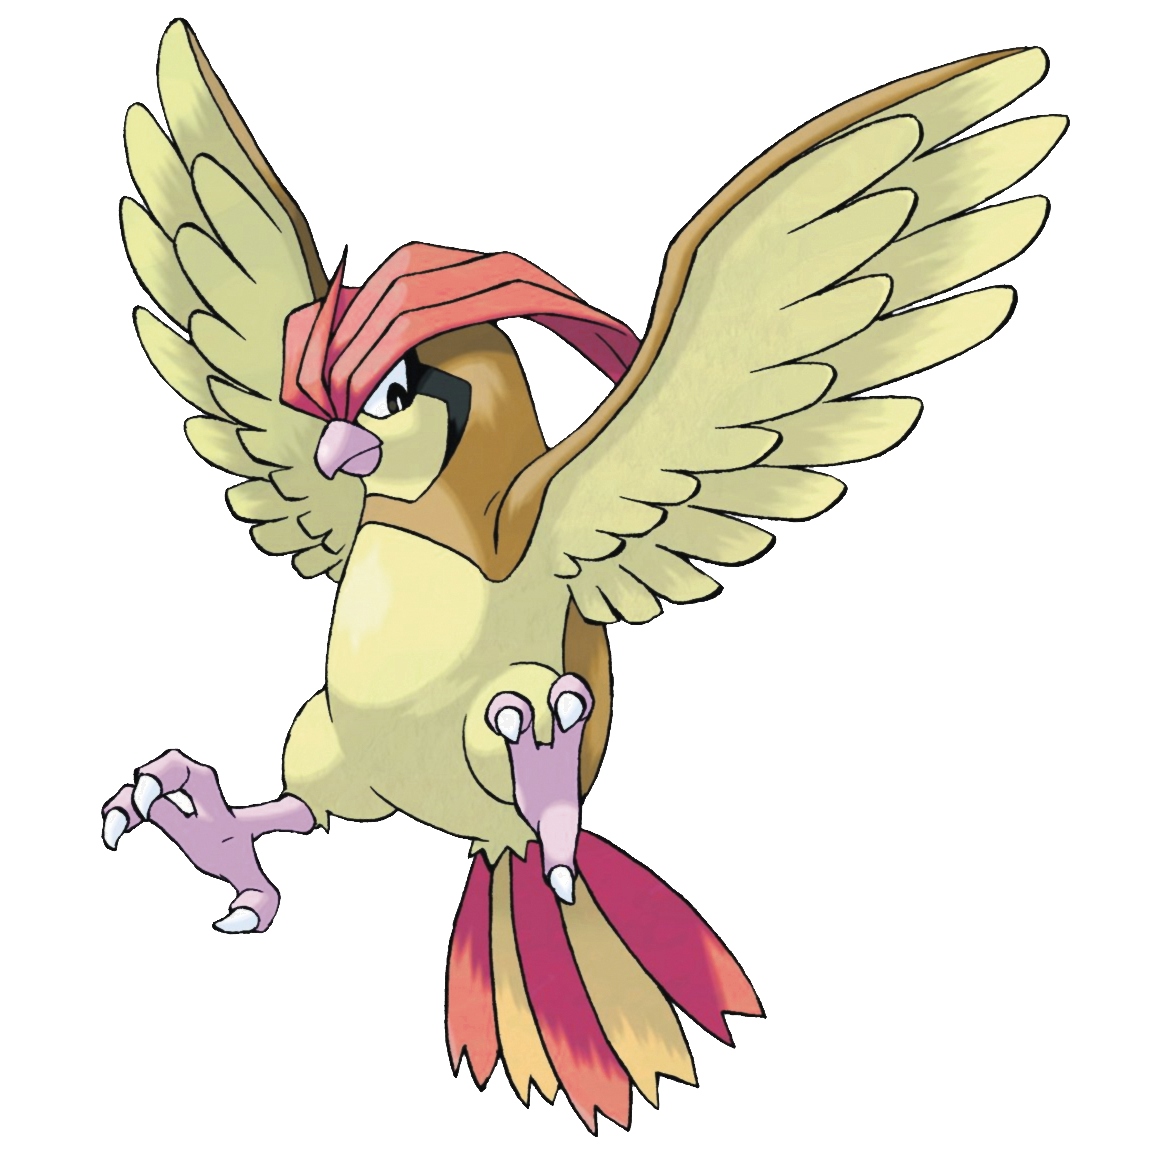 Parrot clipart foot. Pidgeotto the claws on